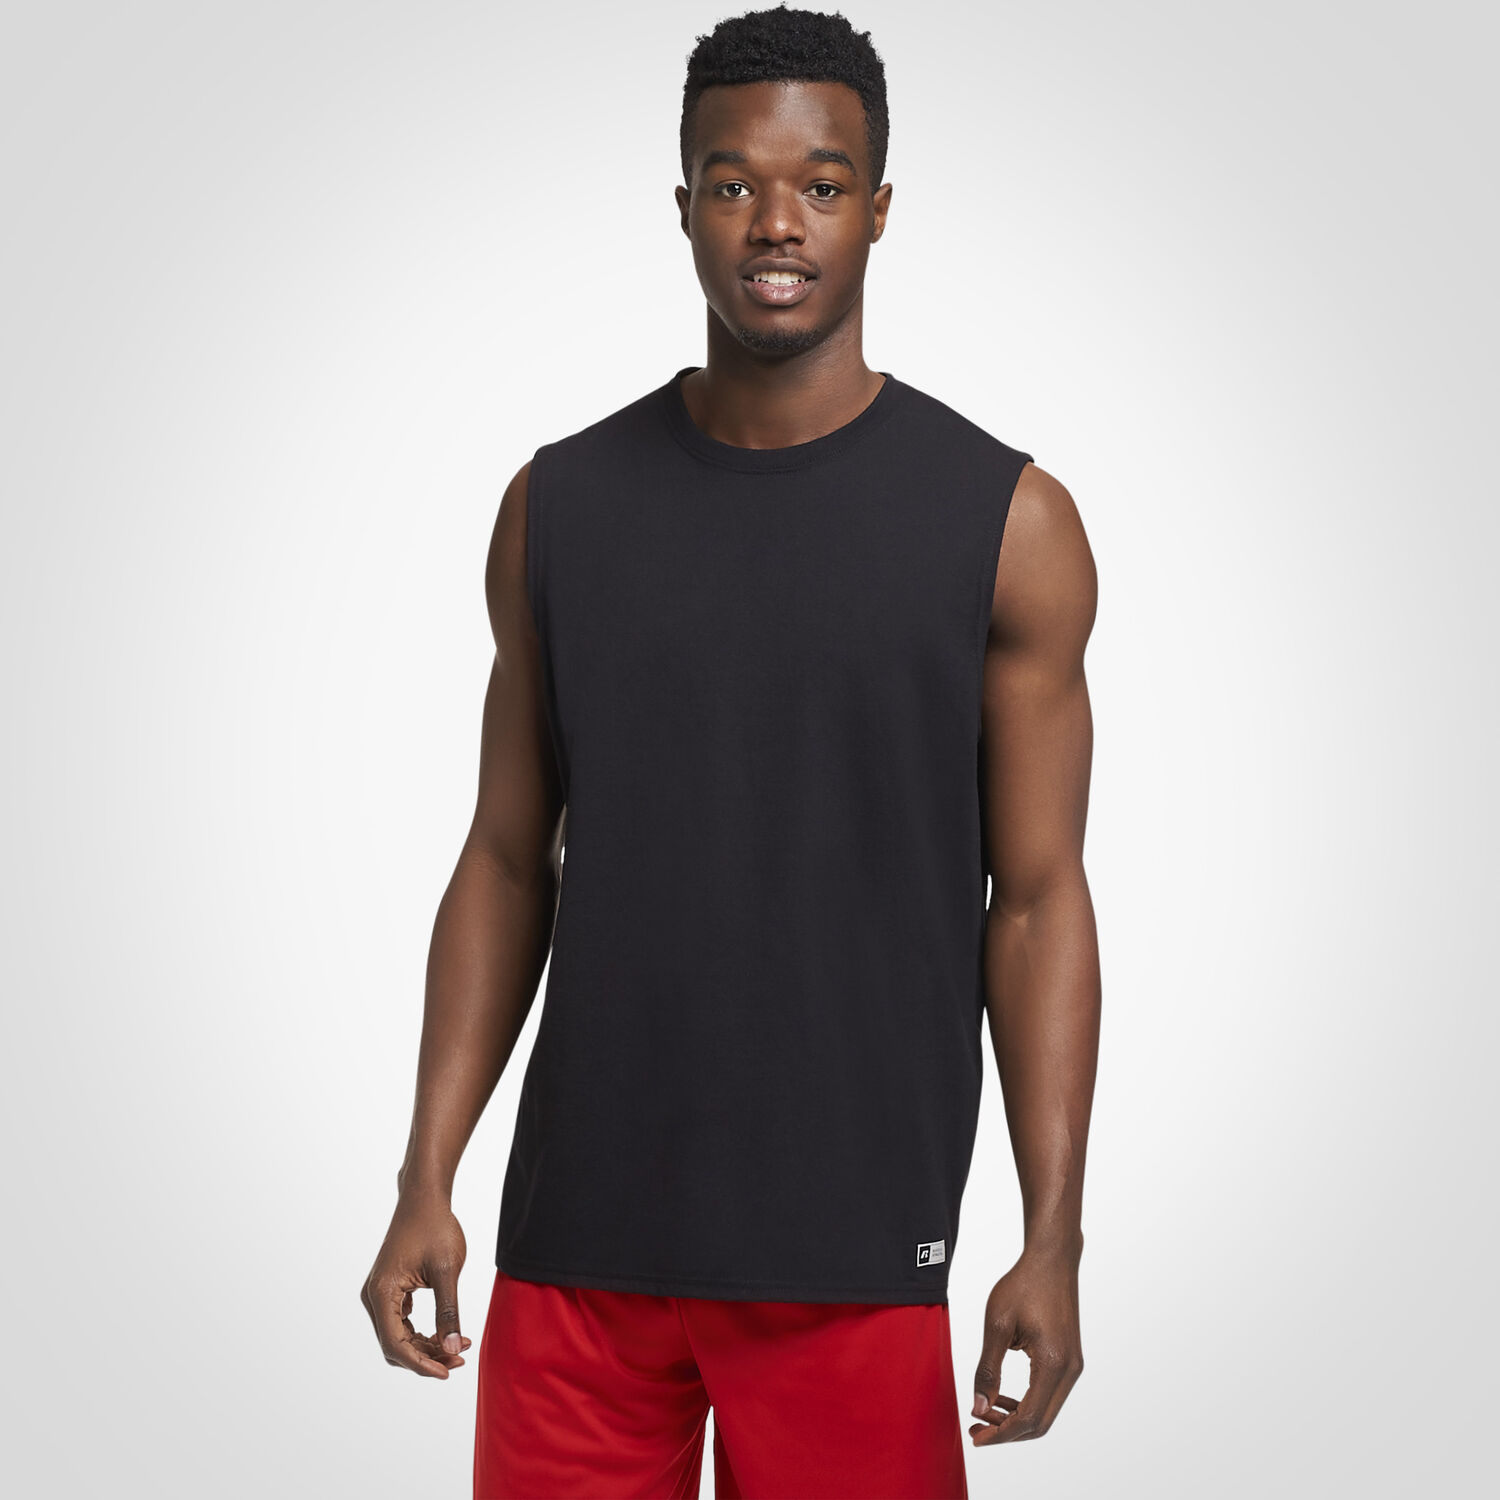 b252e1054cbc1 Men s Essential Muscle Tee - Russell US